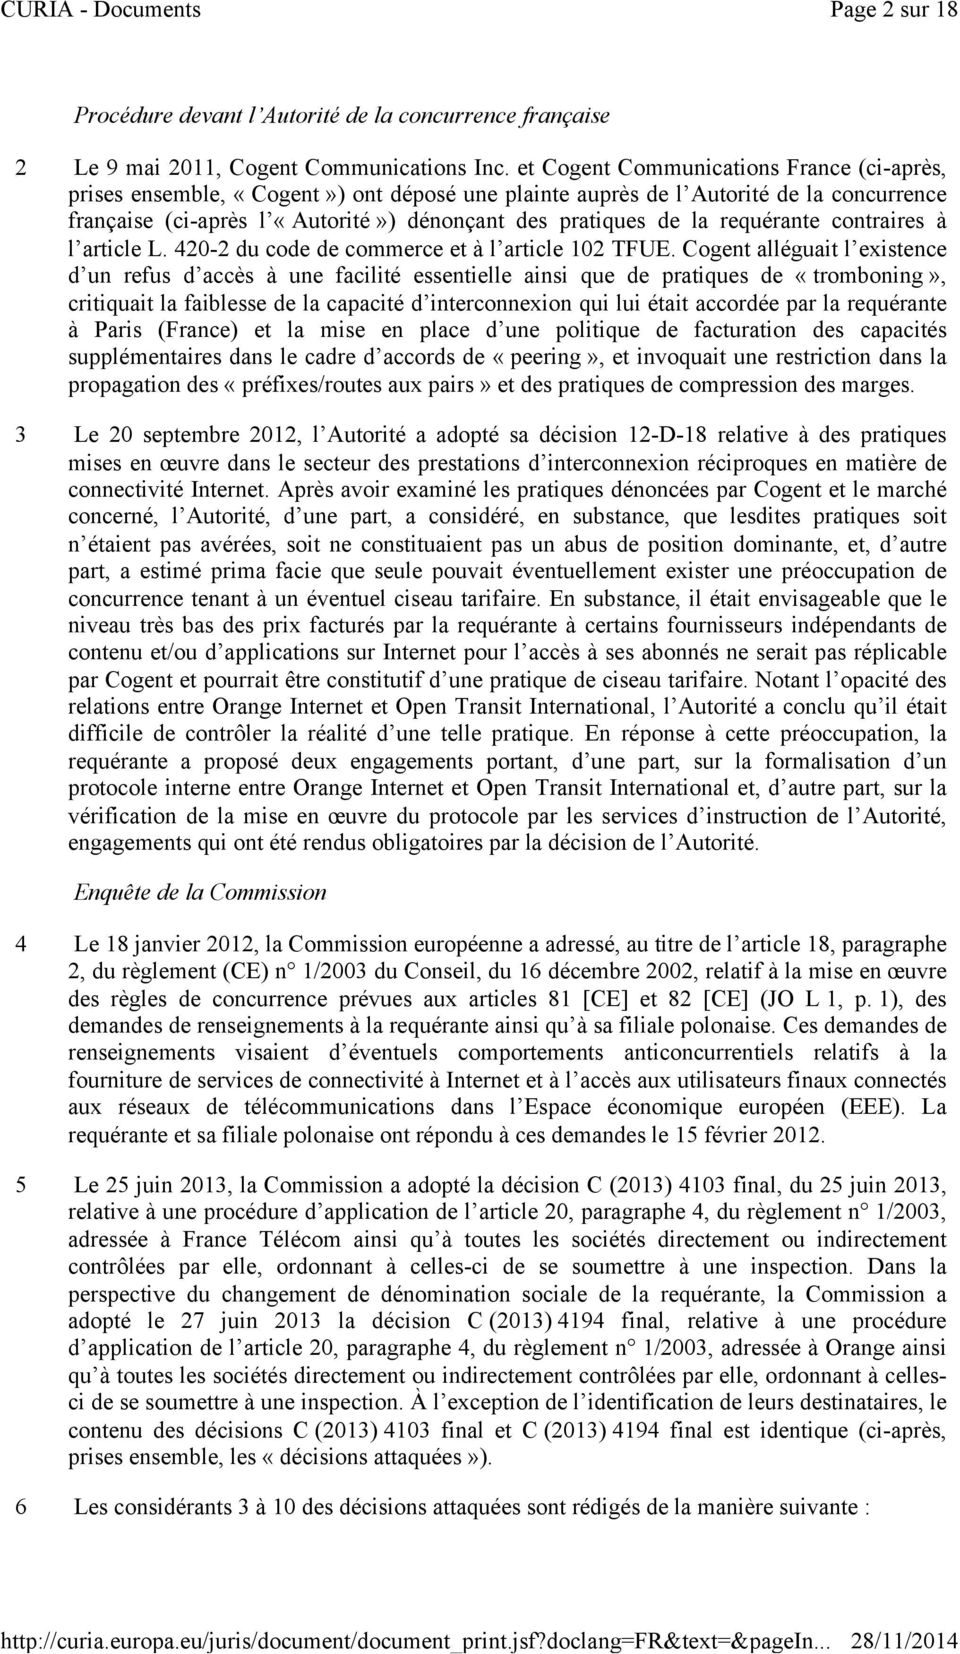 requérante contraires à l article L. 420-2 du code de commerce et à l article 102 TFUE.